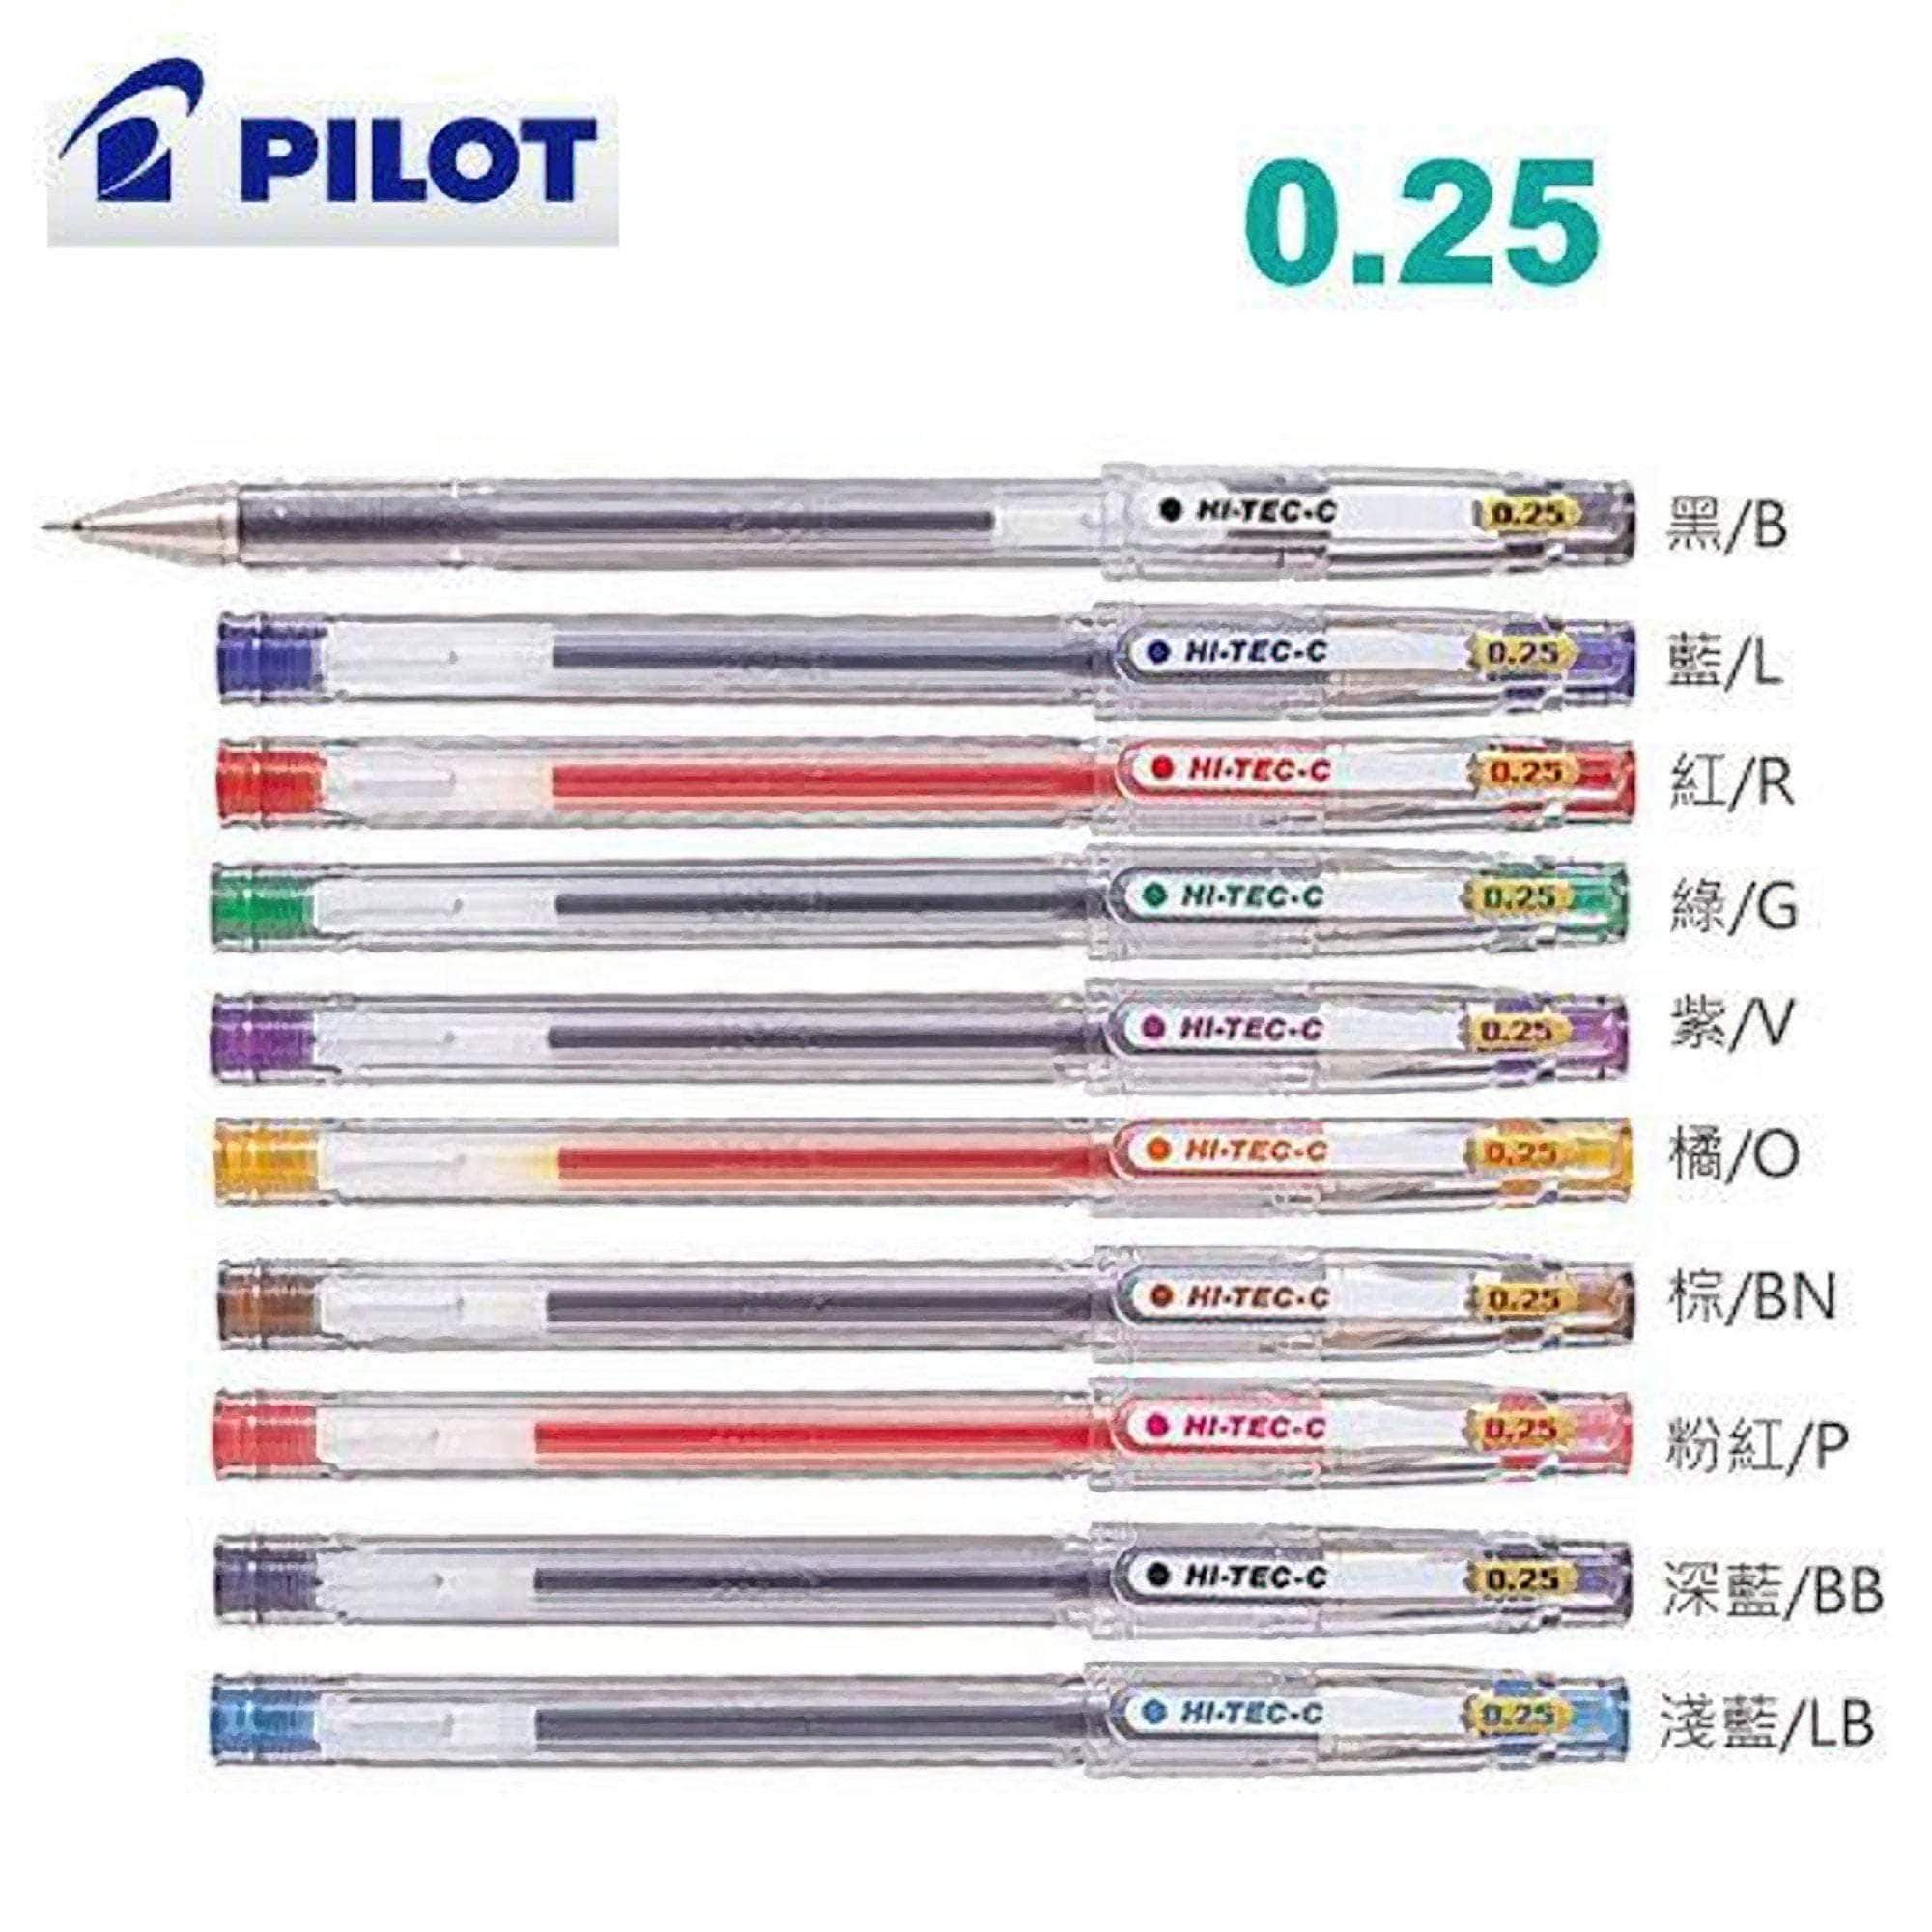 Pilot Hi-Tec-C Gel Pen Ultra Fine Point BROWN | 0.25 mm - The Stationery Life!